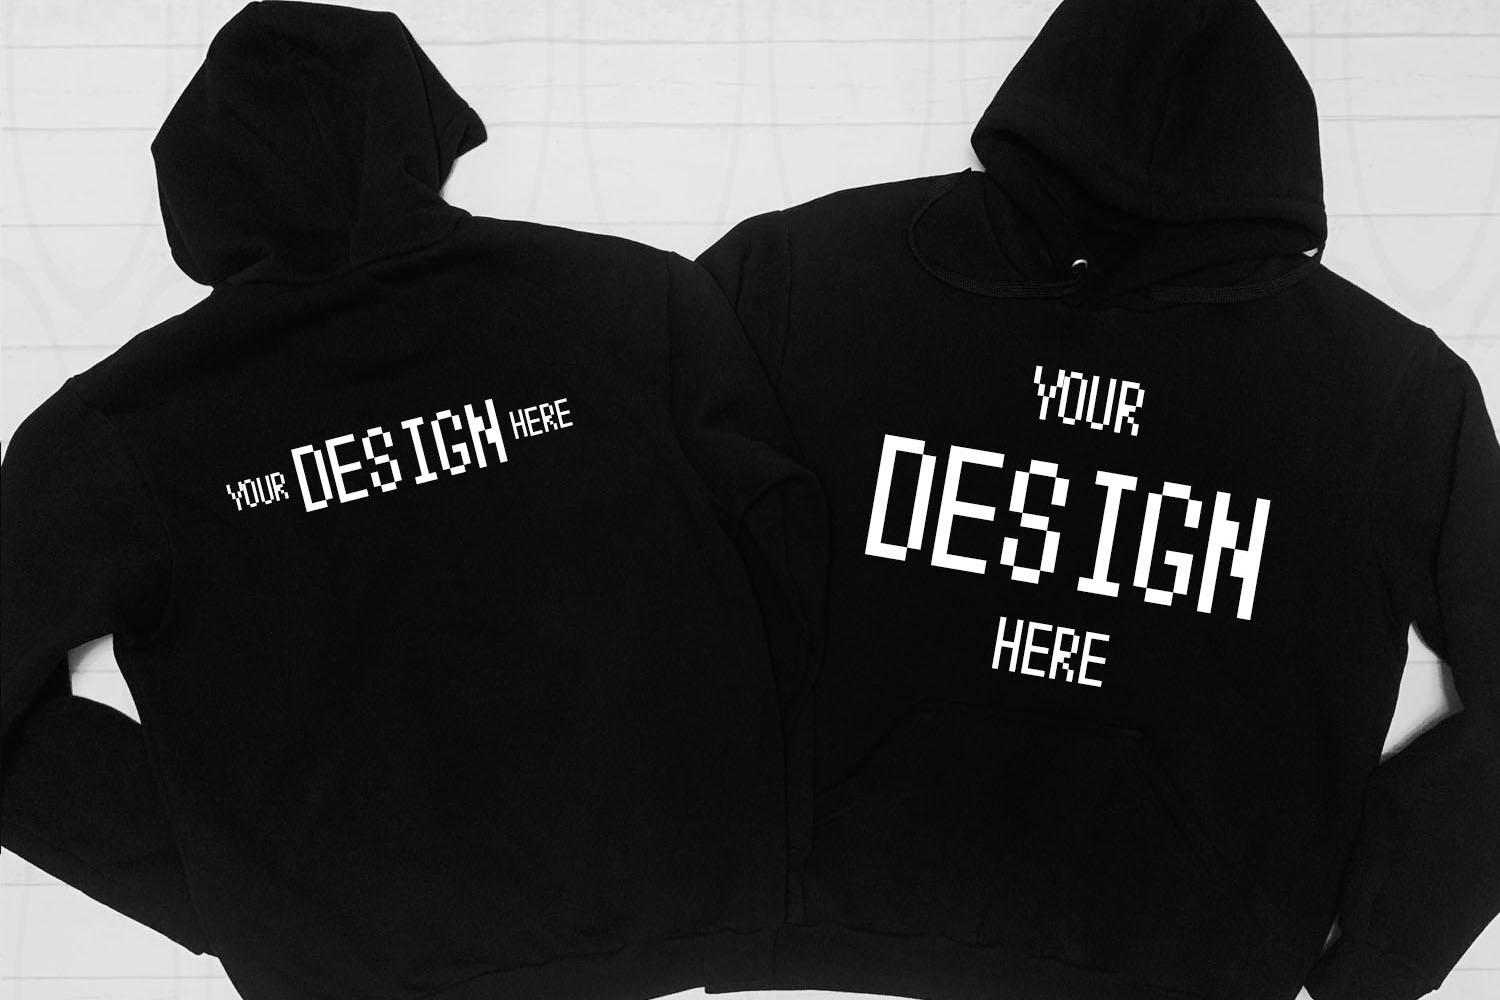 Blank Two black Hoodies mockup Styled Stock Photography example image 1